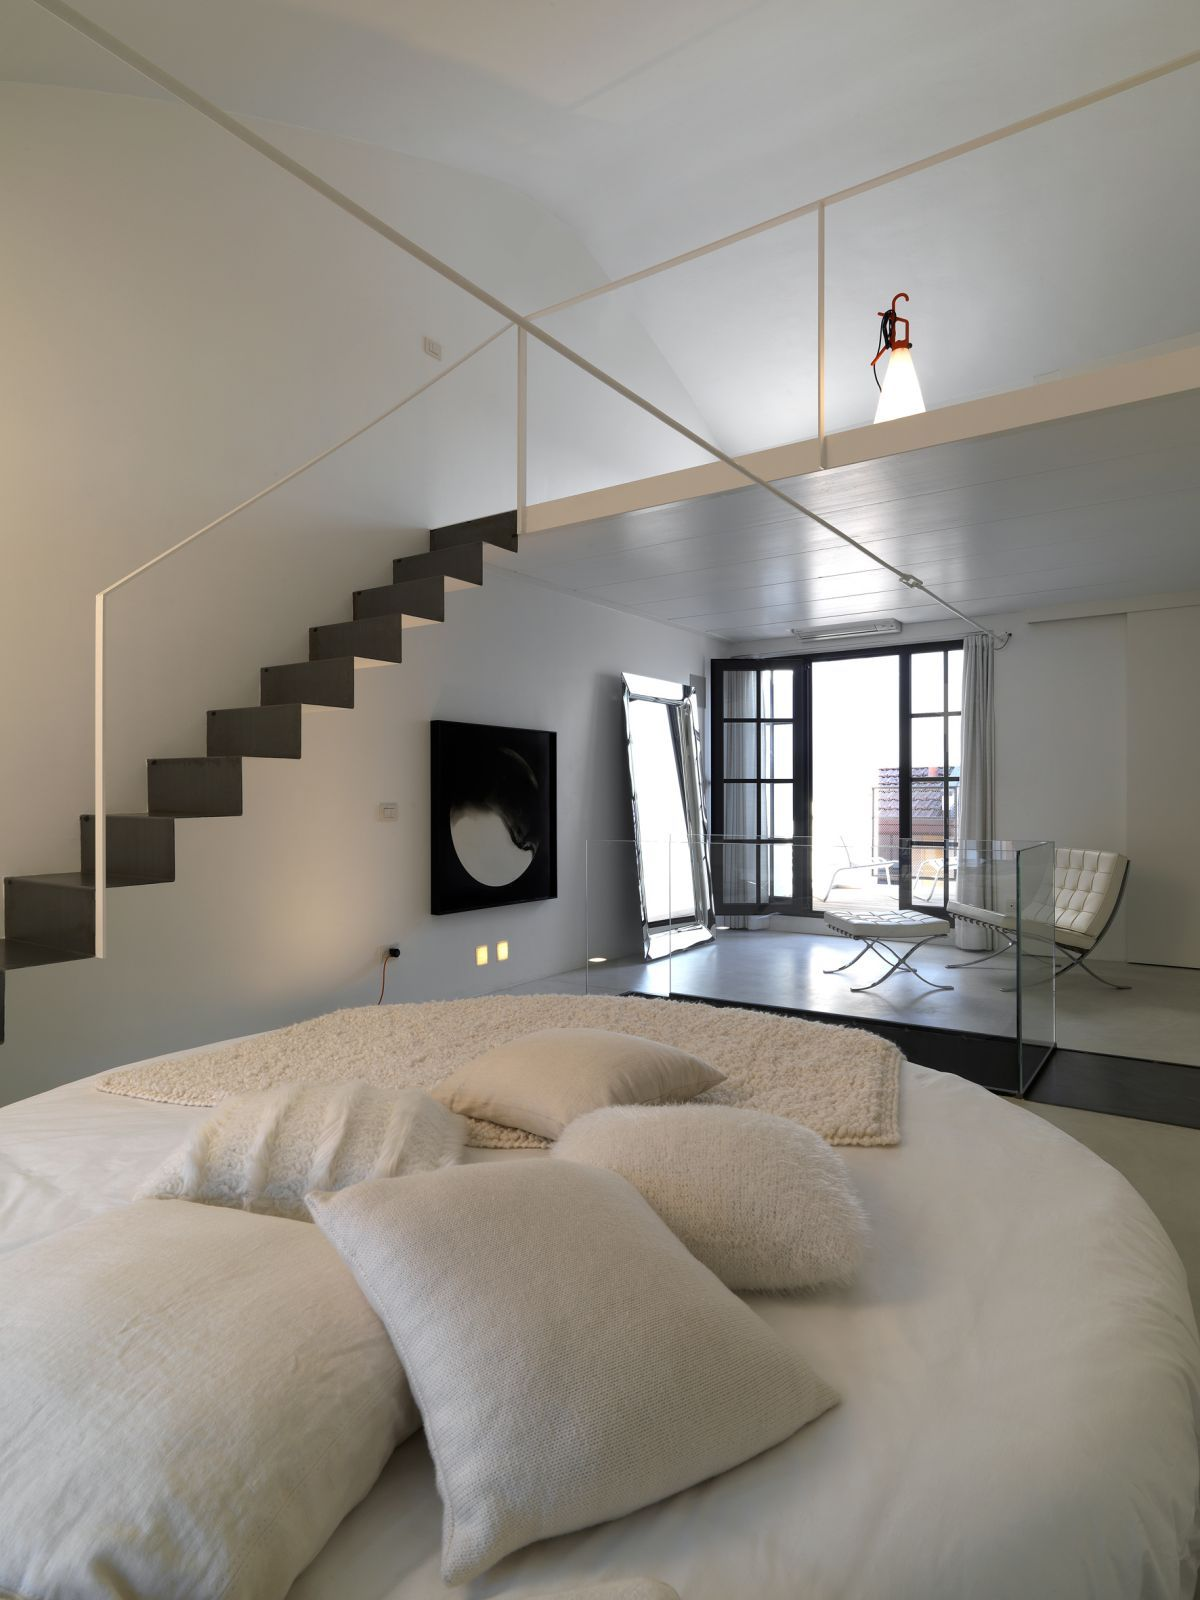 New loft bedroom design with modern loft bedroom interior design photo part of loft bedroom design at tiny houses and